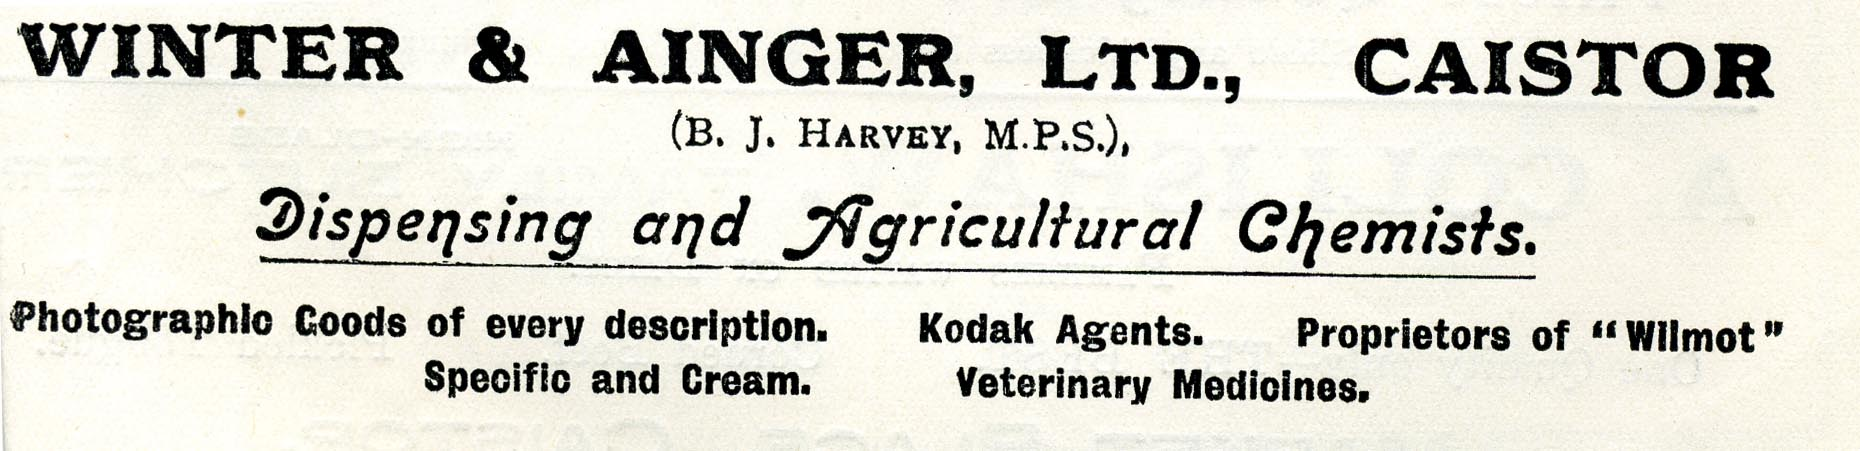 Advert 1933 Winter&Ainger.jpg